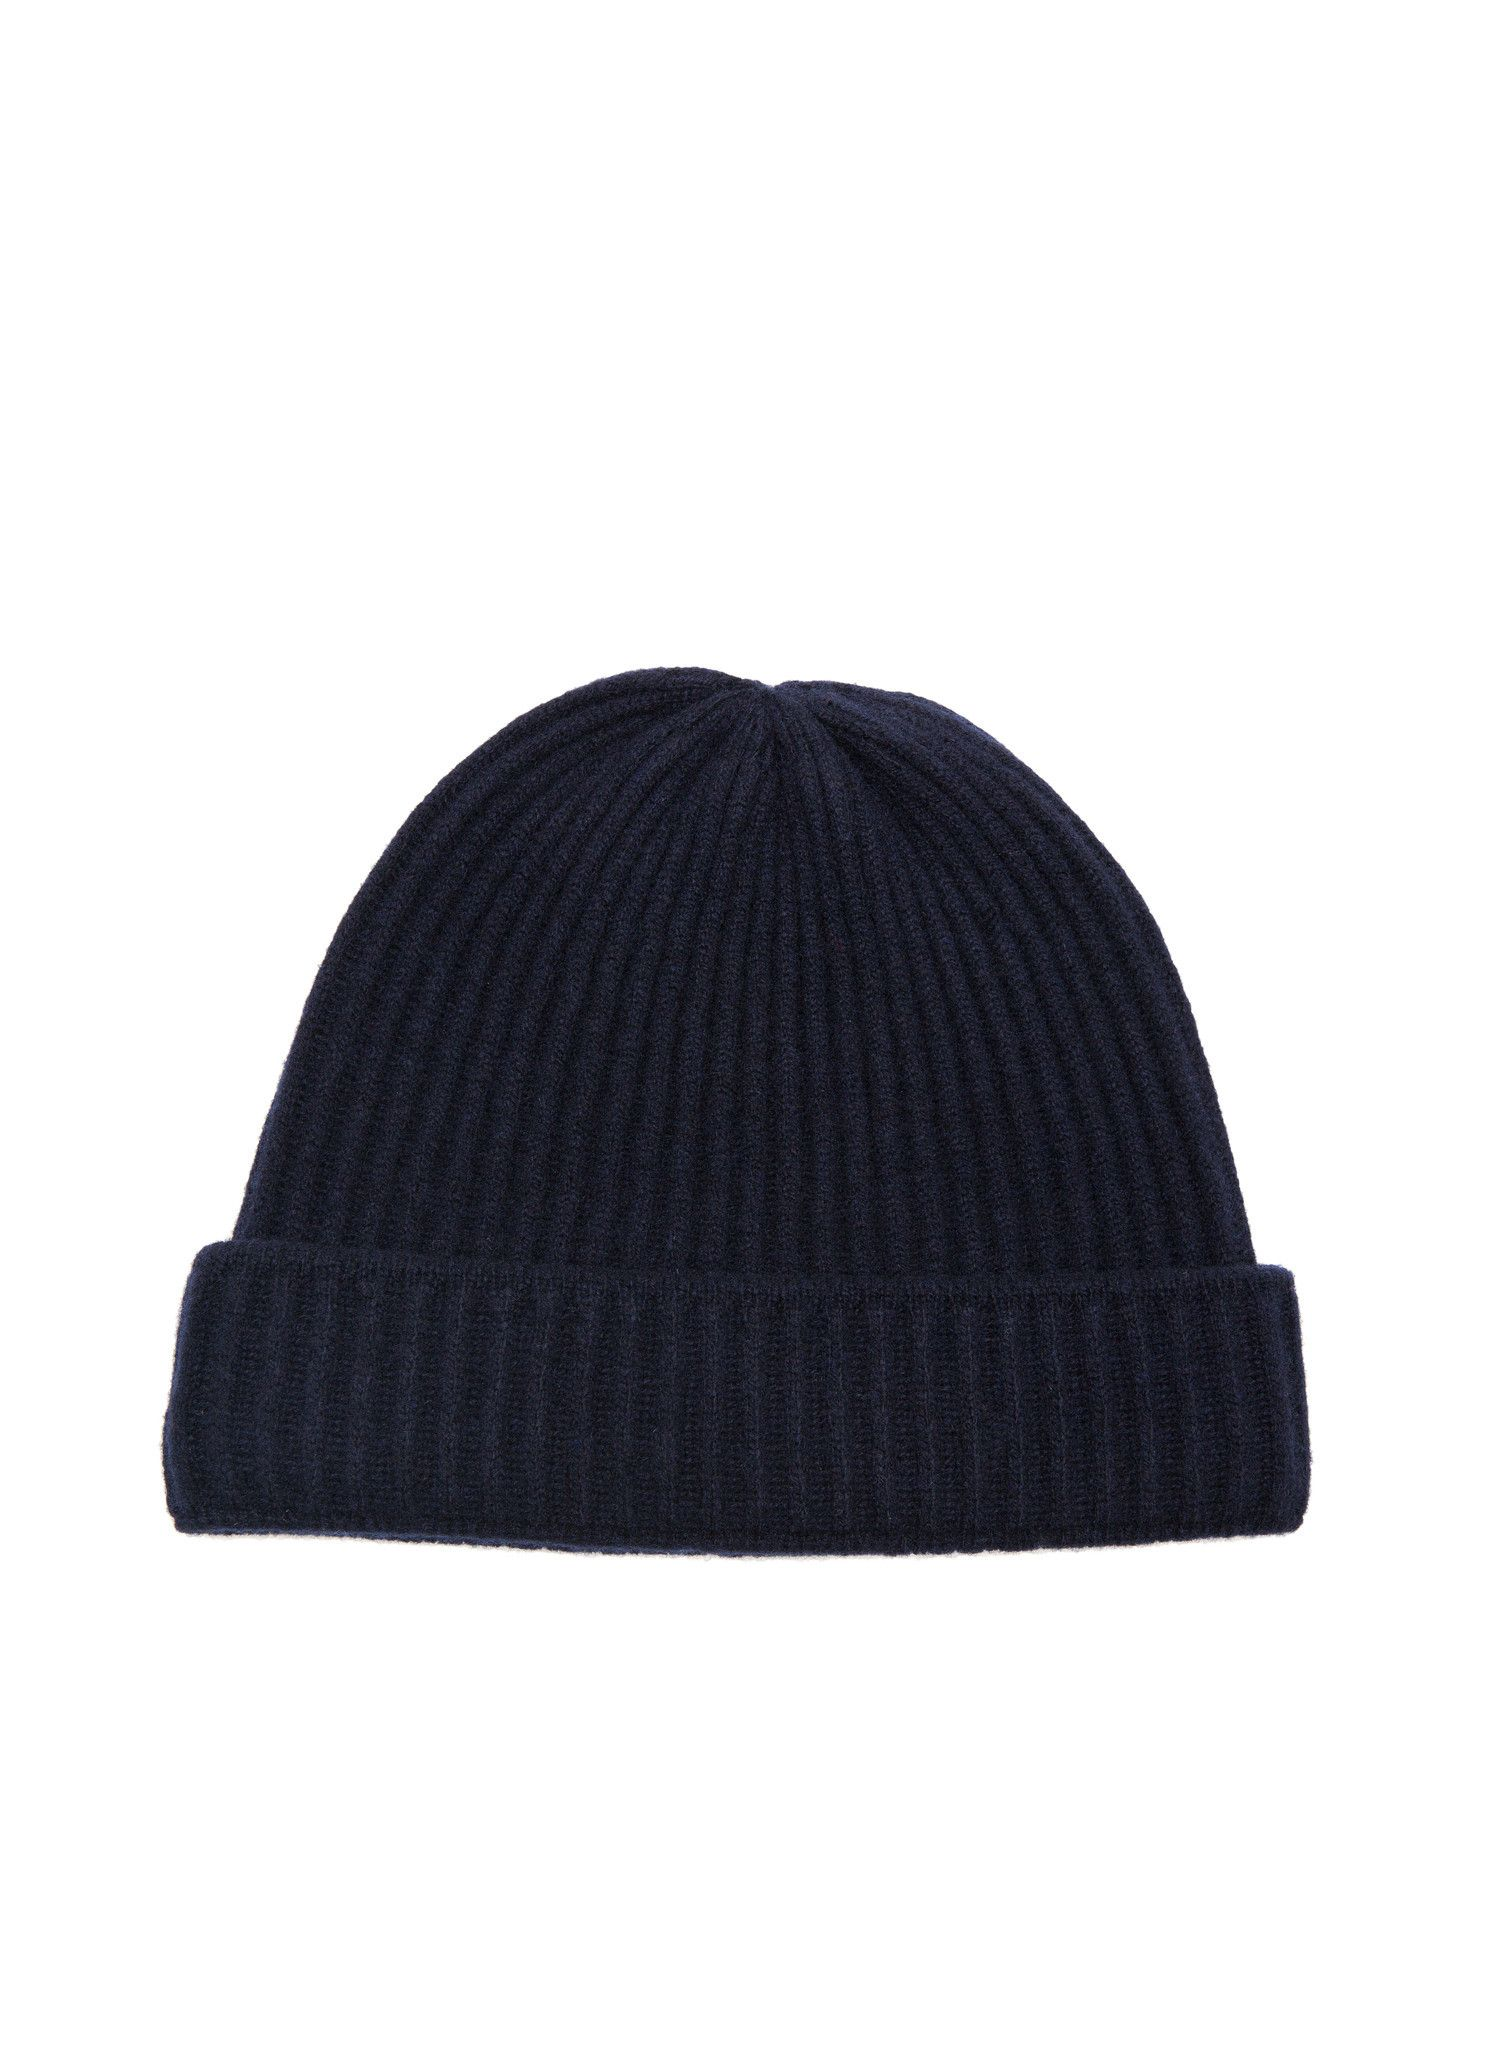 Acne Studios - Fall Winter 2014 - Menswear // Blue Miles Beanie